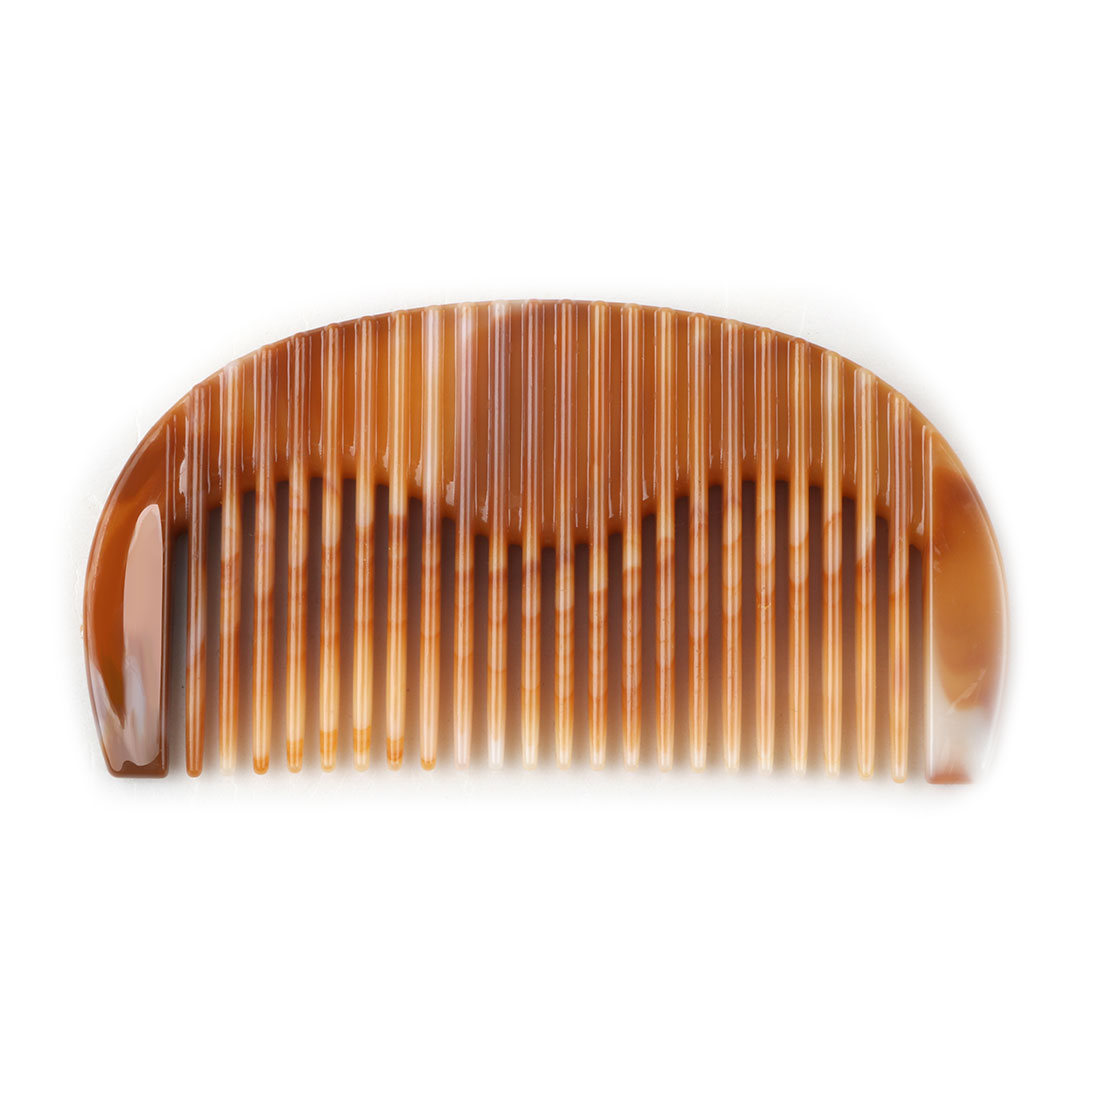 Ladies Faux Jade Tooth Designed Portable Hairstyle Comb Brown 11cm Length